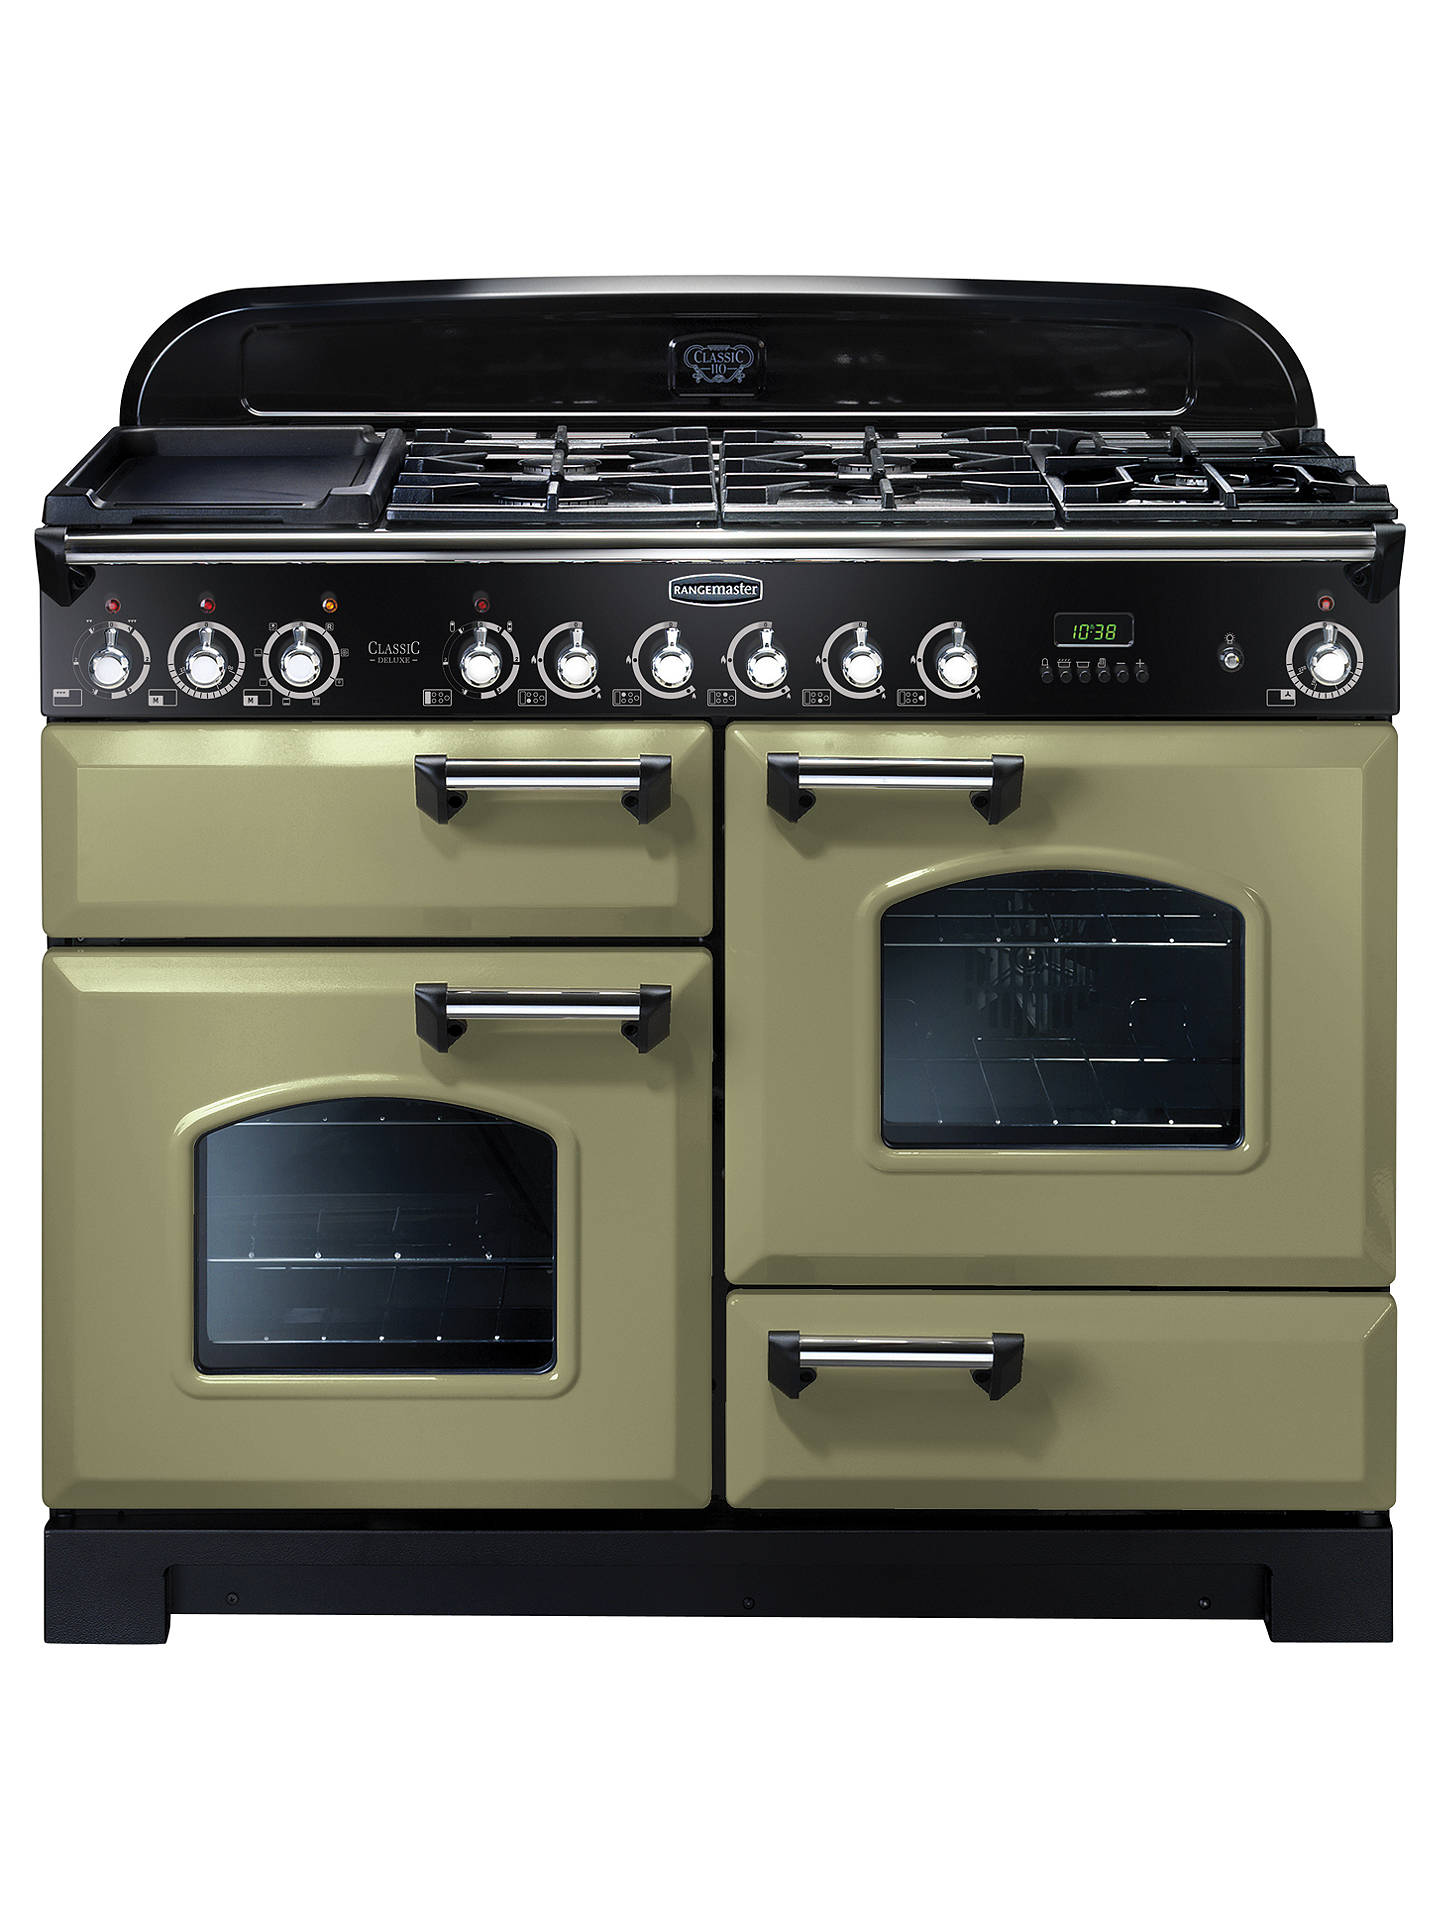 BuyRangemaster Classic Deluxe 110 Dual Fuel Range Cooker, Green/Chrome Trim Online at johnlewis.com